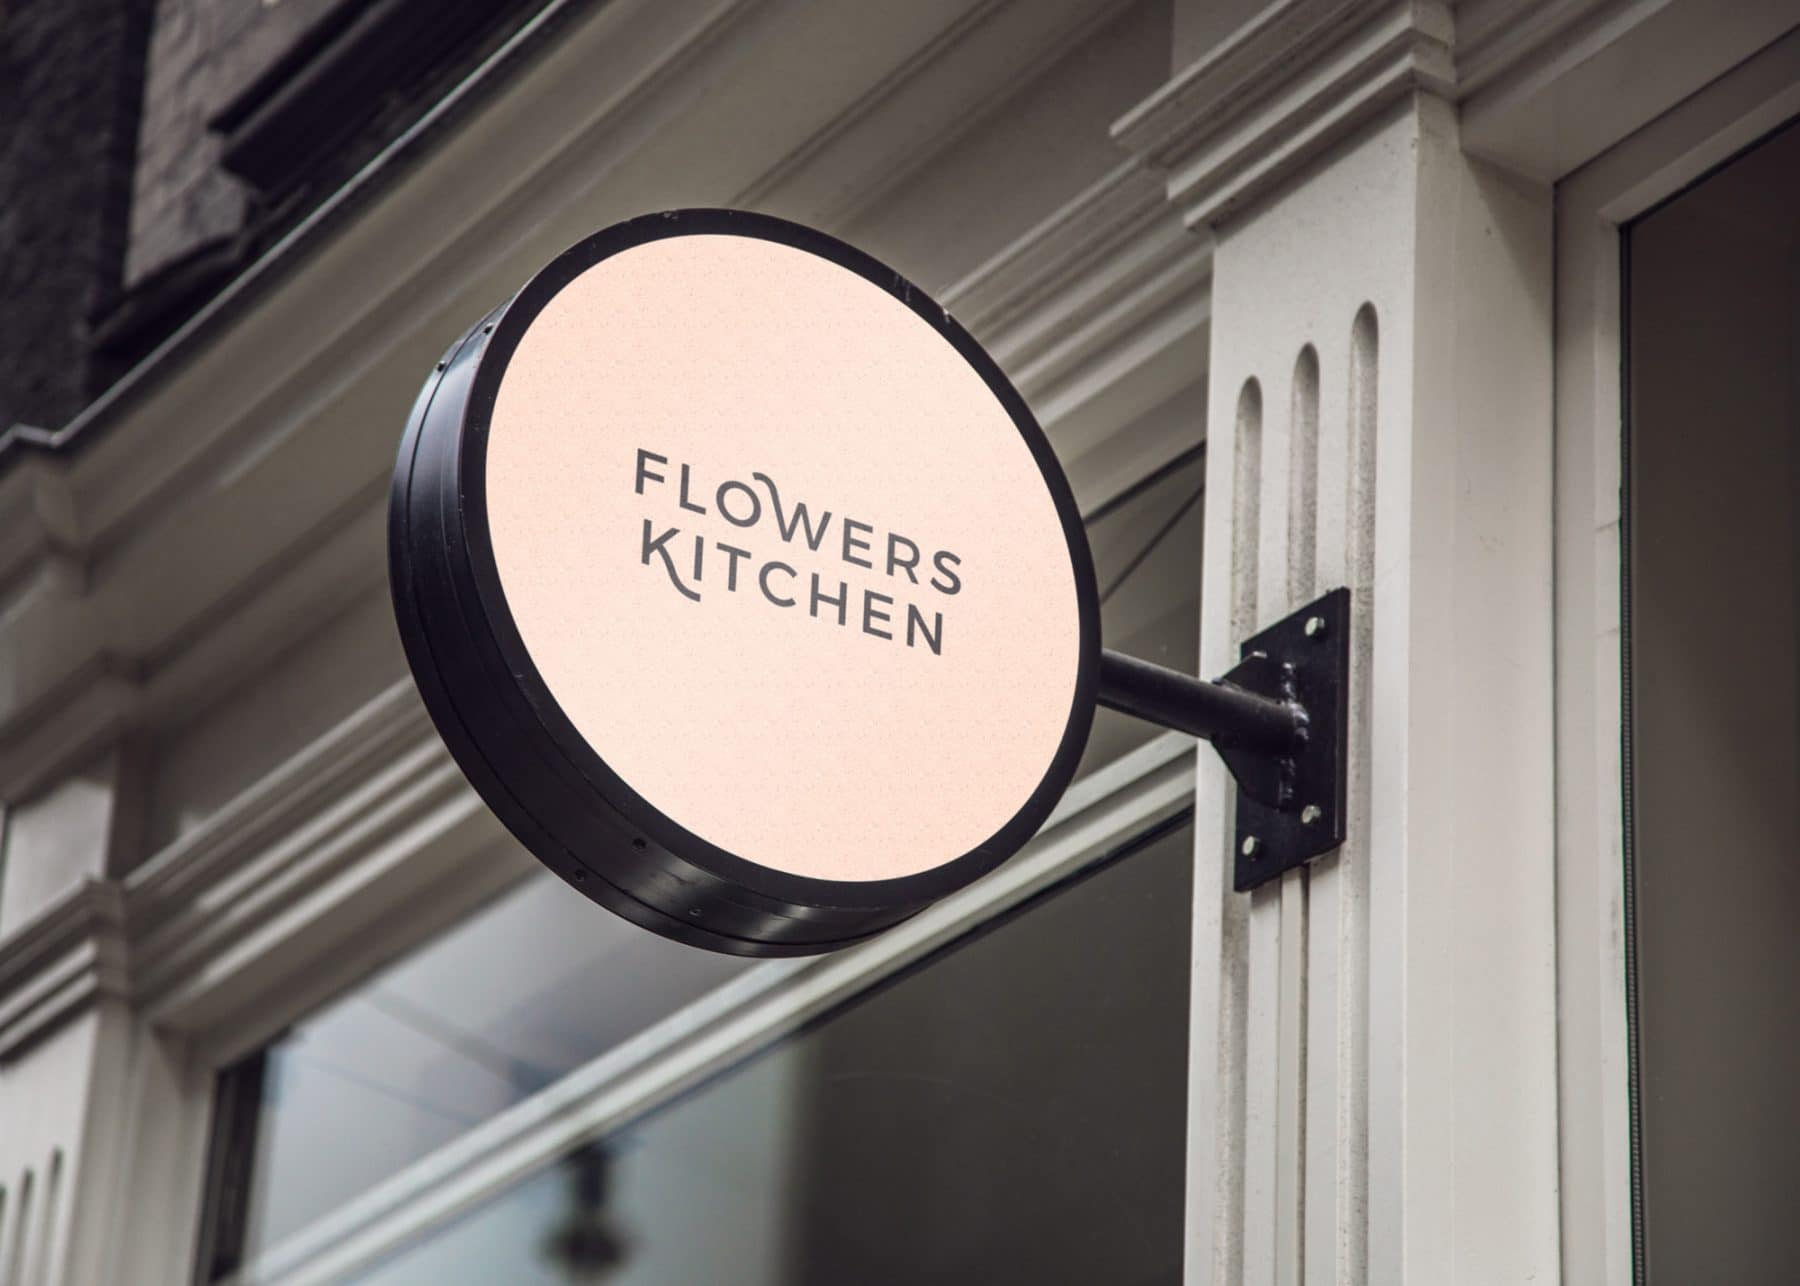 Flowers-Kitchen-Kinlake-Hanging-Wall-Sign-MockUp-3